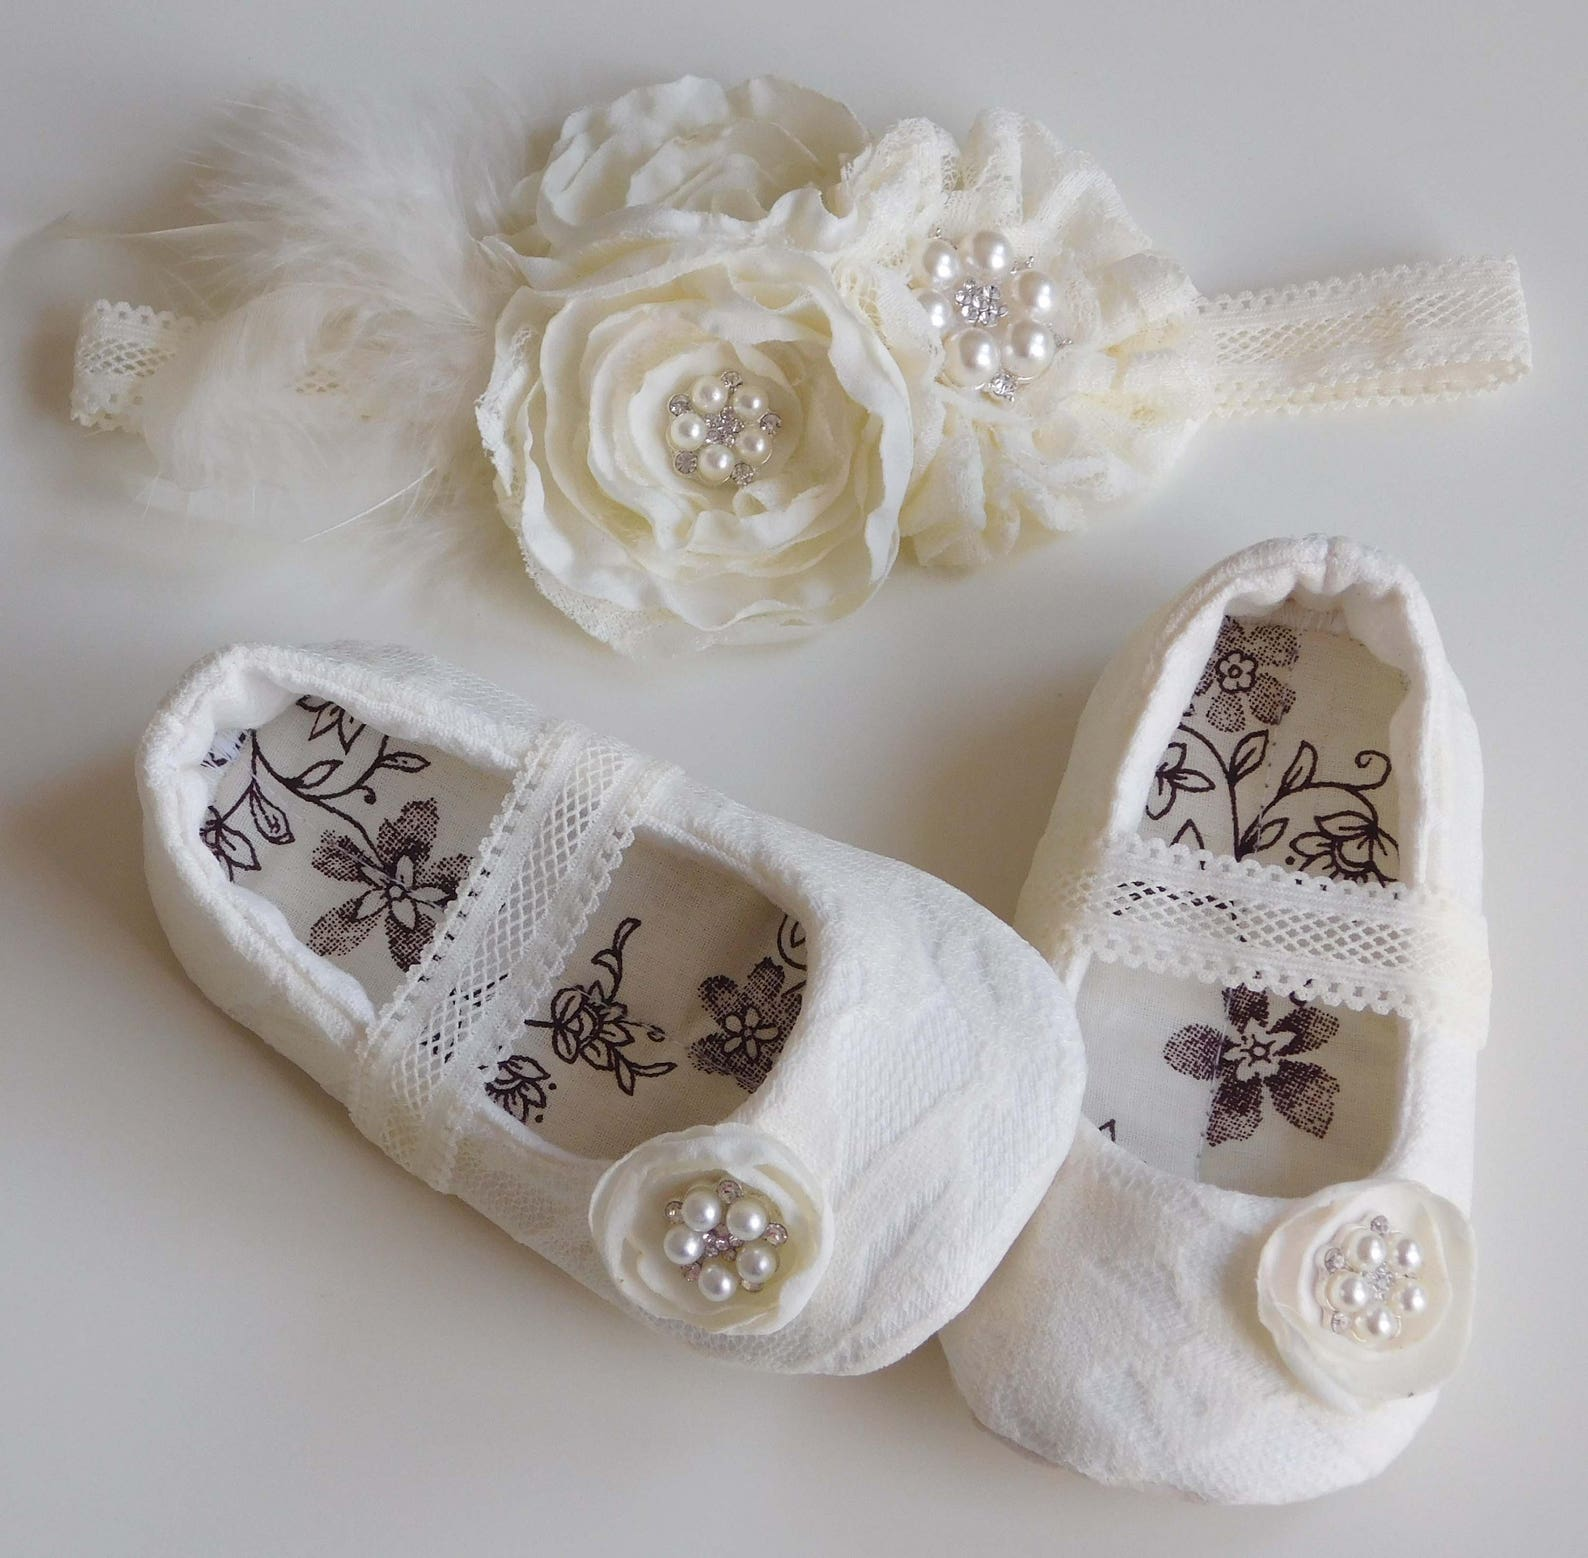 crib shoes baby shoes ballet shoes baby gift flower girl shoes white shoes girl flats baptism shoes baby shower